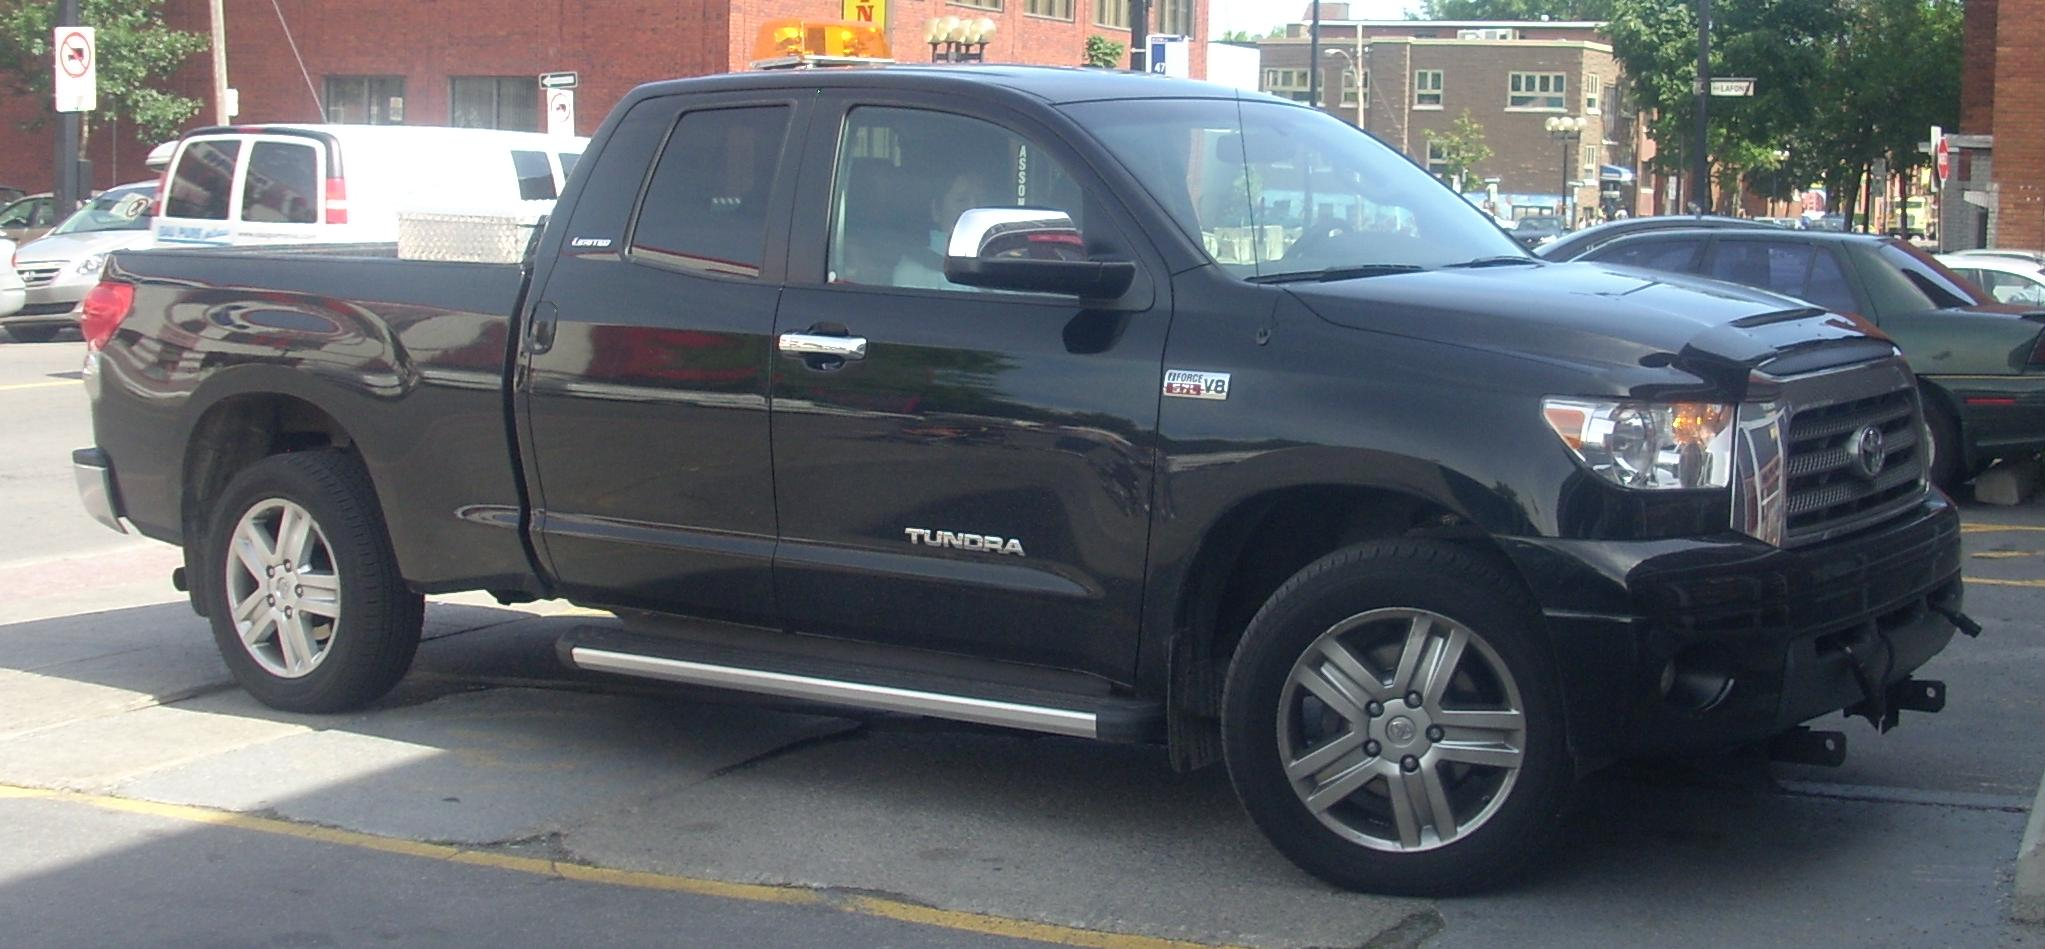 toyota tundra limited picture 12 reviews news specs buy car. Black Bedroom Furniture Sets. Home Design Ideas